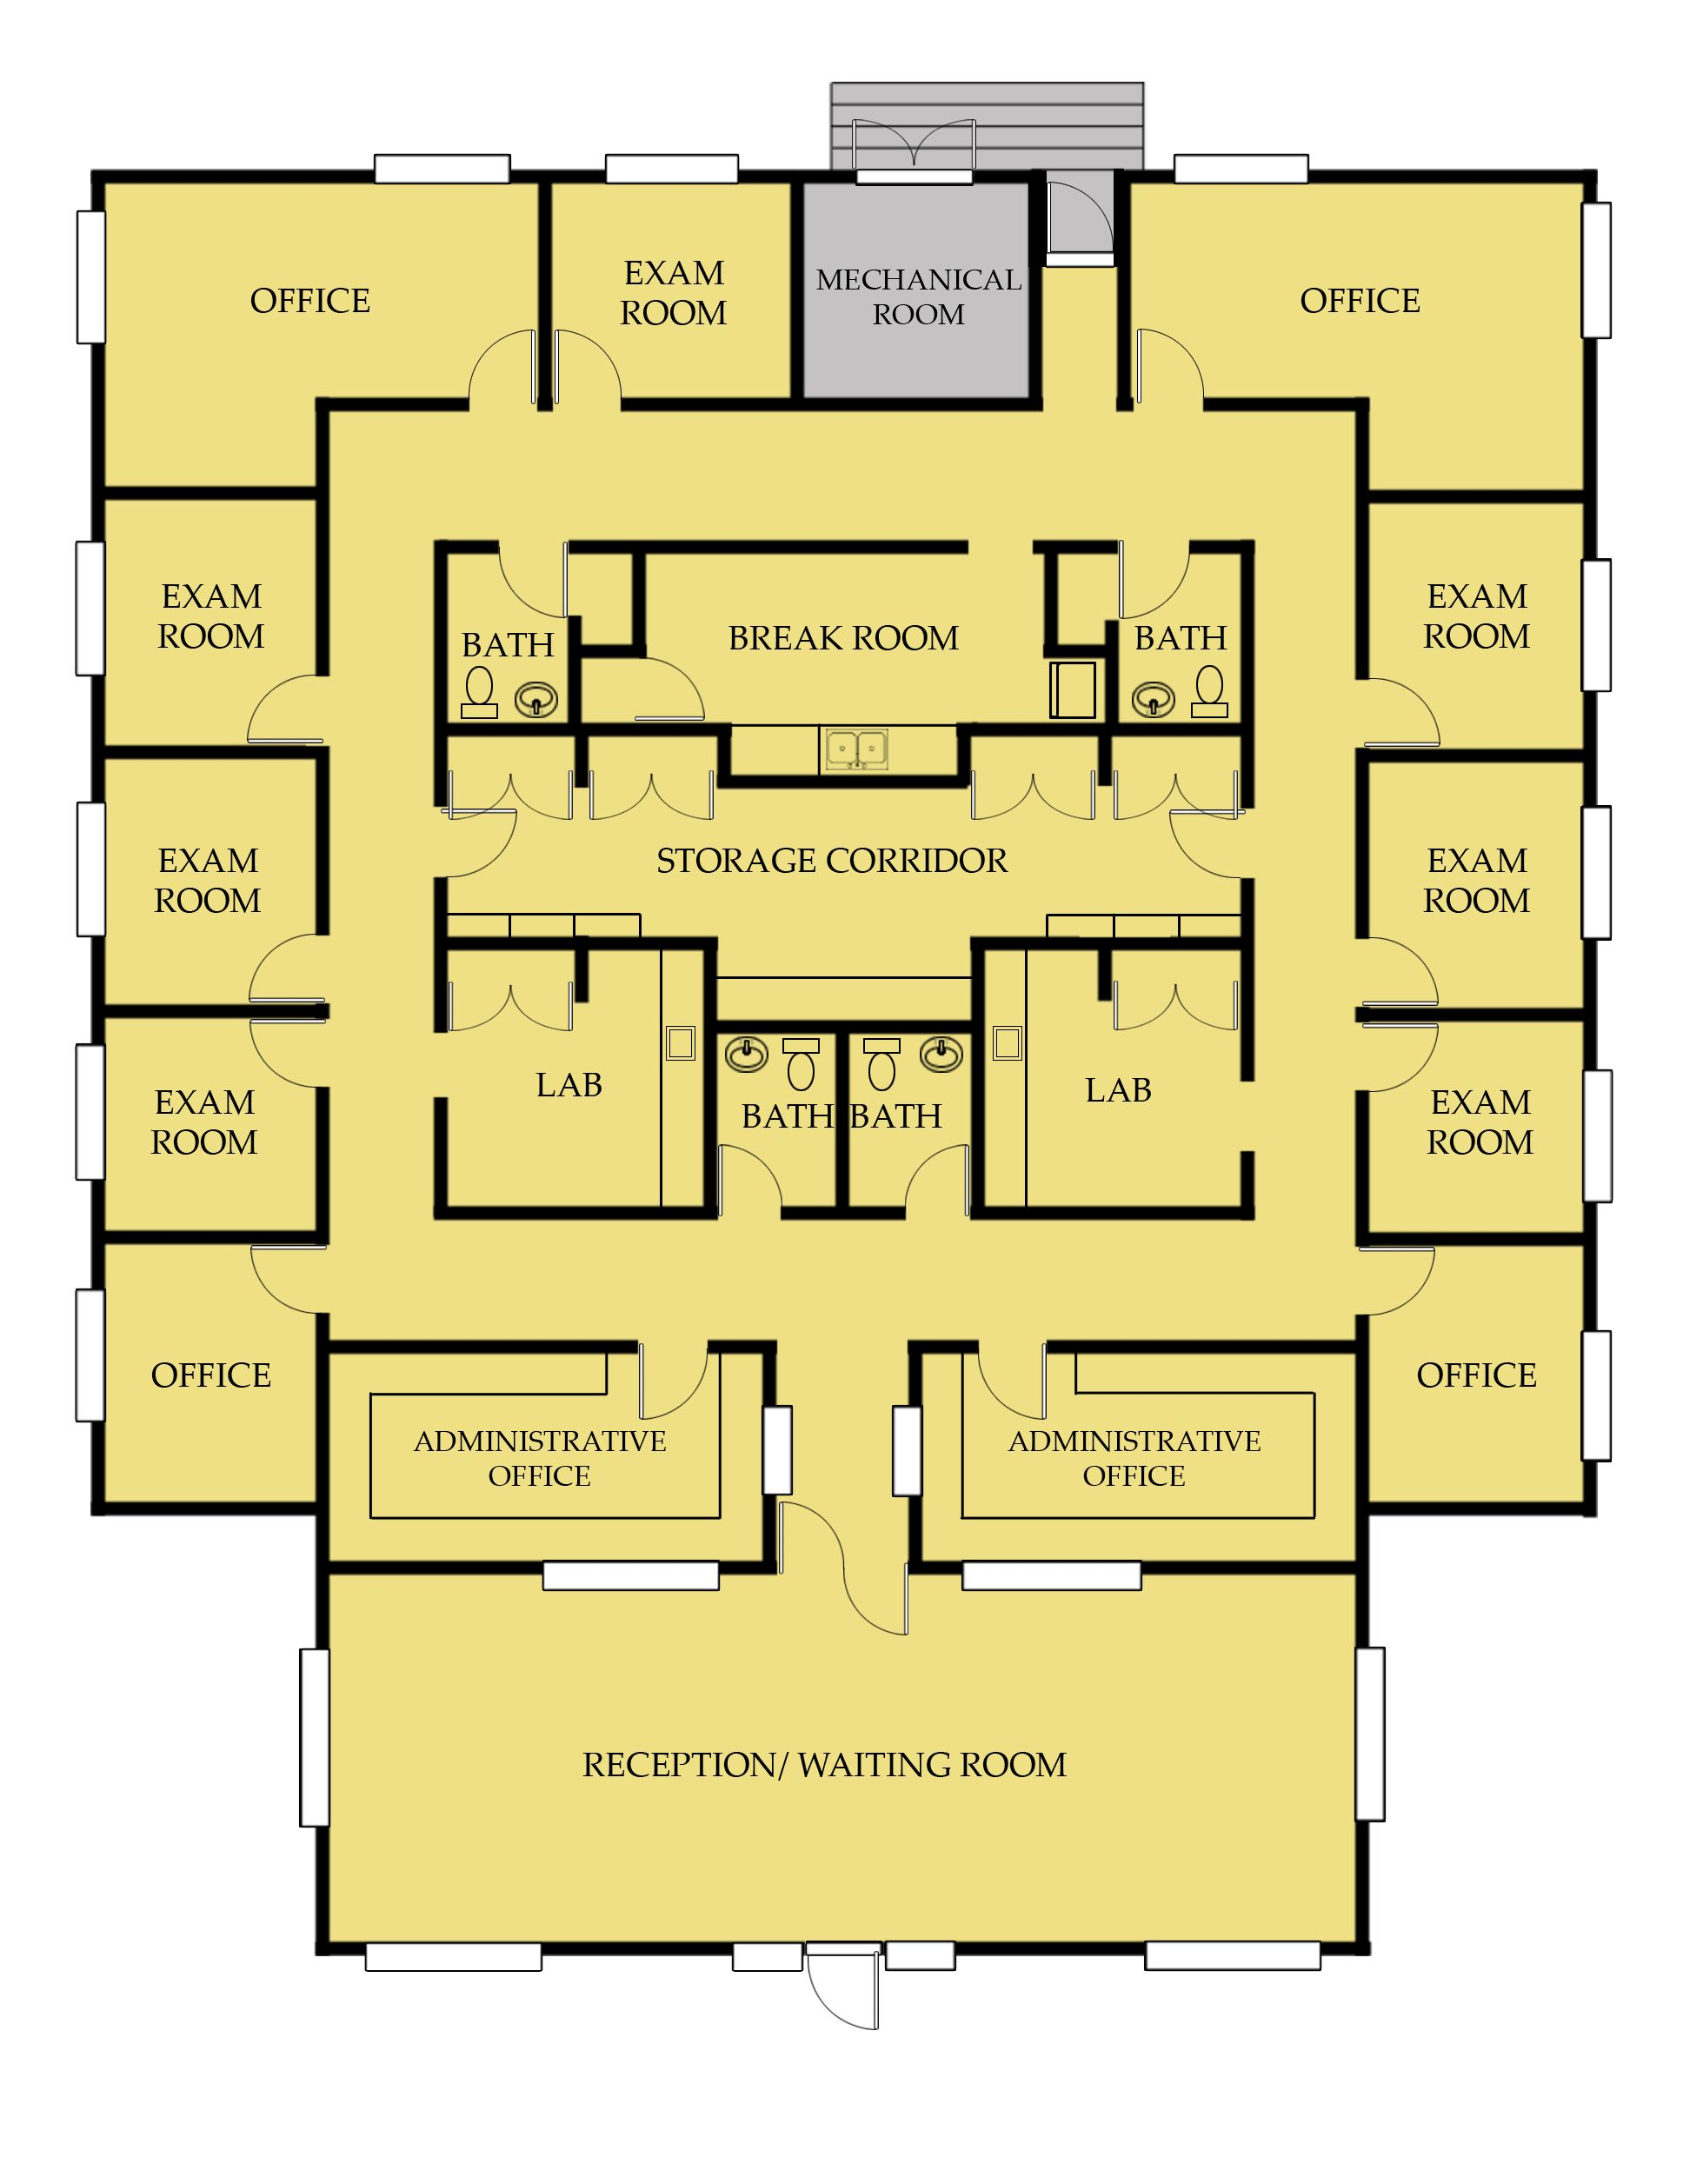 Medical office floor plan pinteres for Design office layout online free